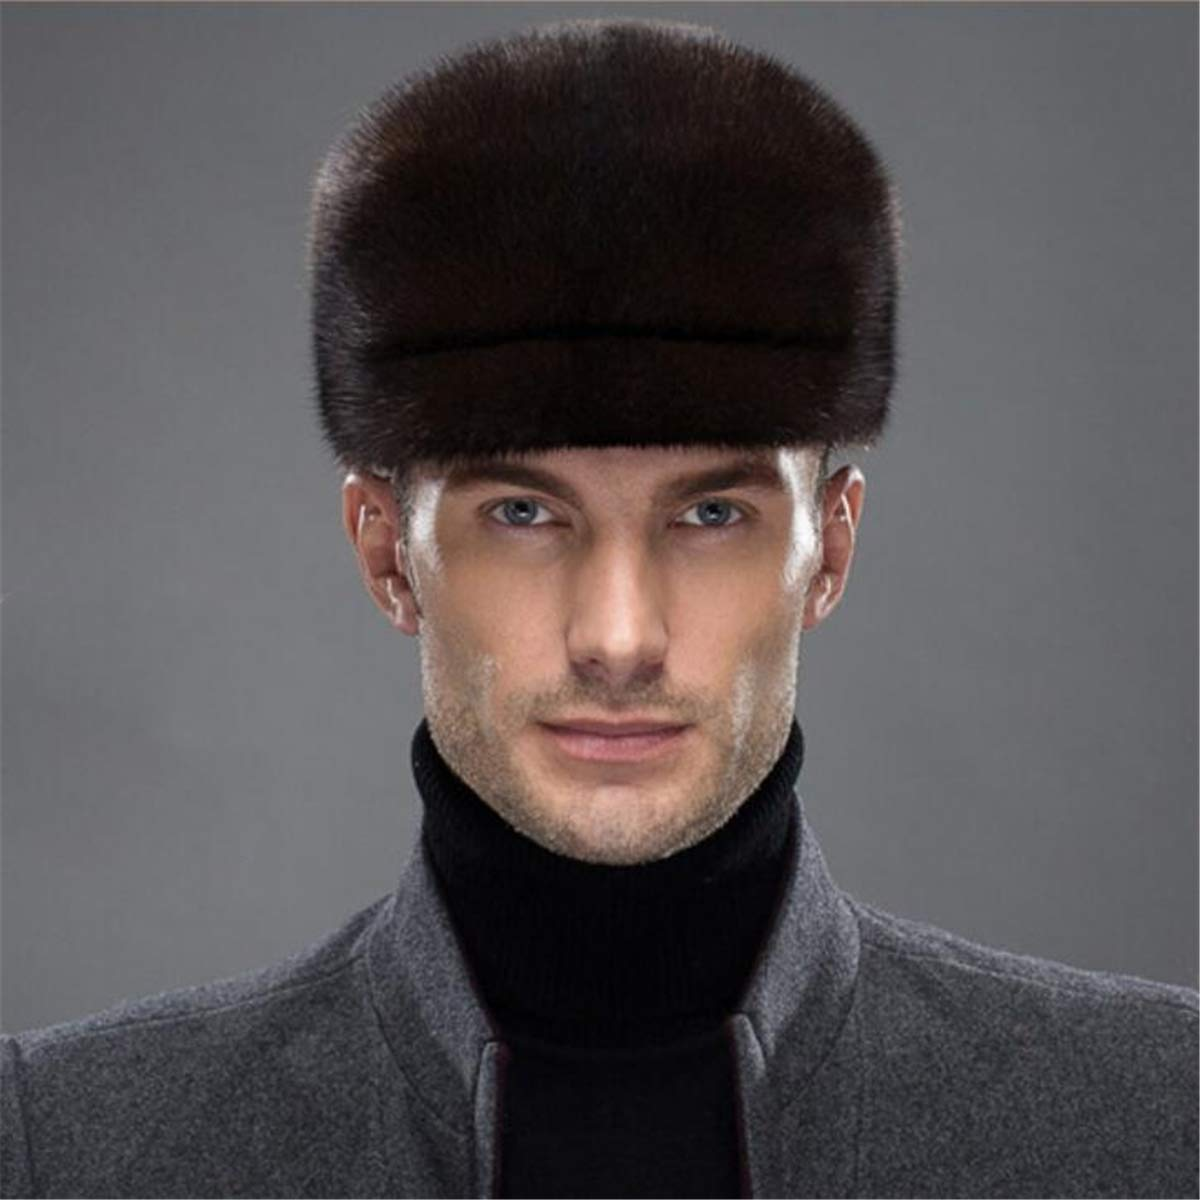 KAISHIN Middle Aged Men Full-pelt Mink Fur Peaked Caps Winter All Match Fur Visors Hats Coffee XL by KAISHIN